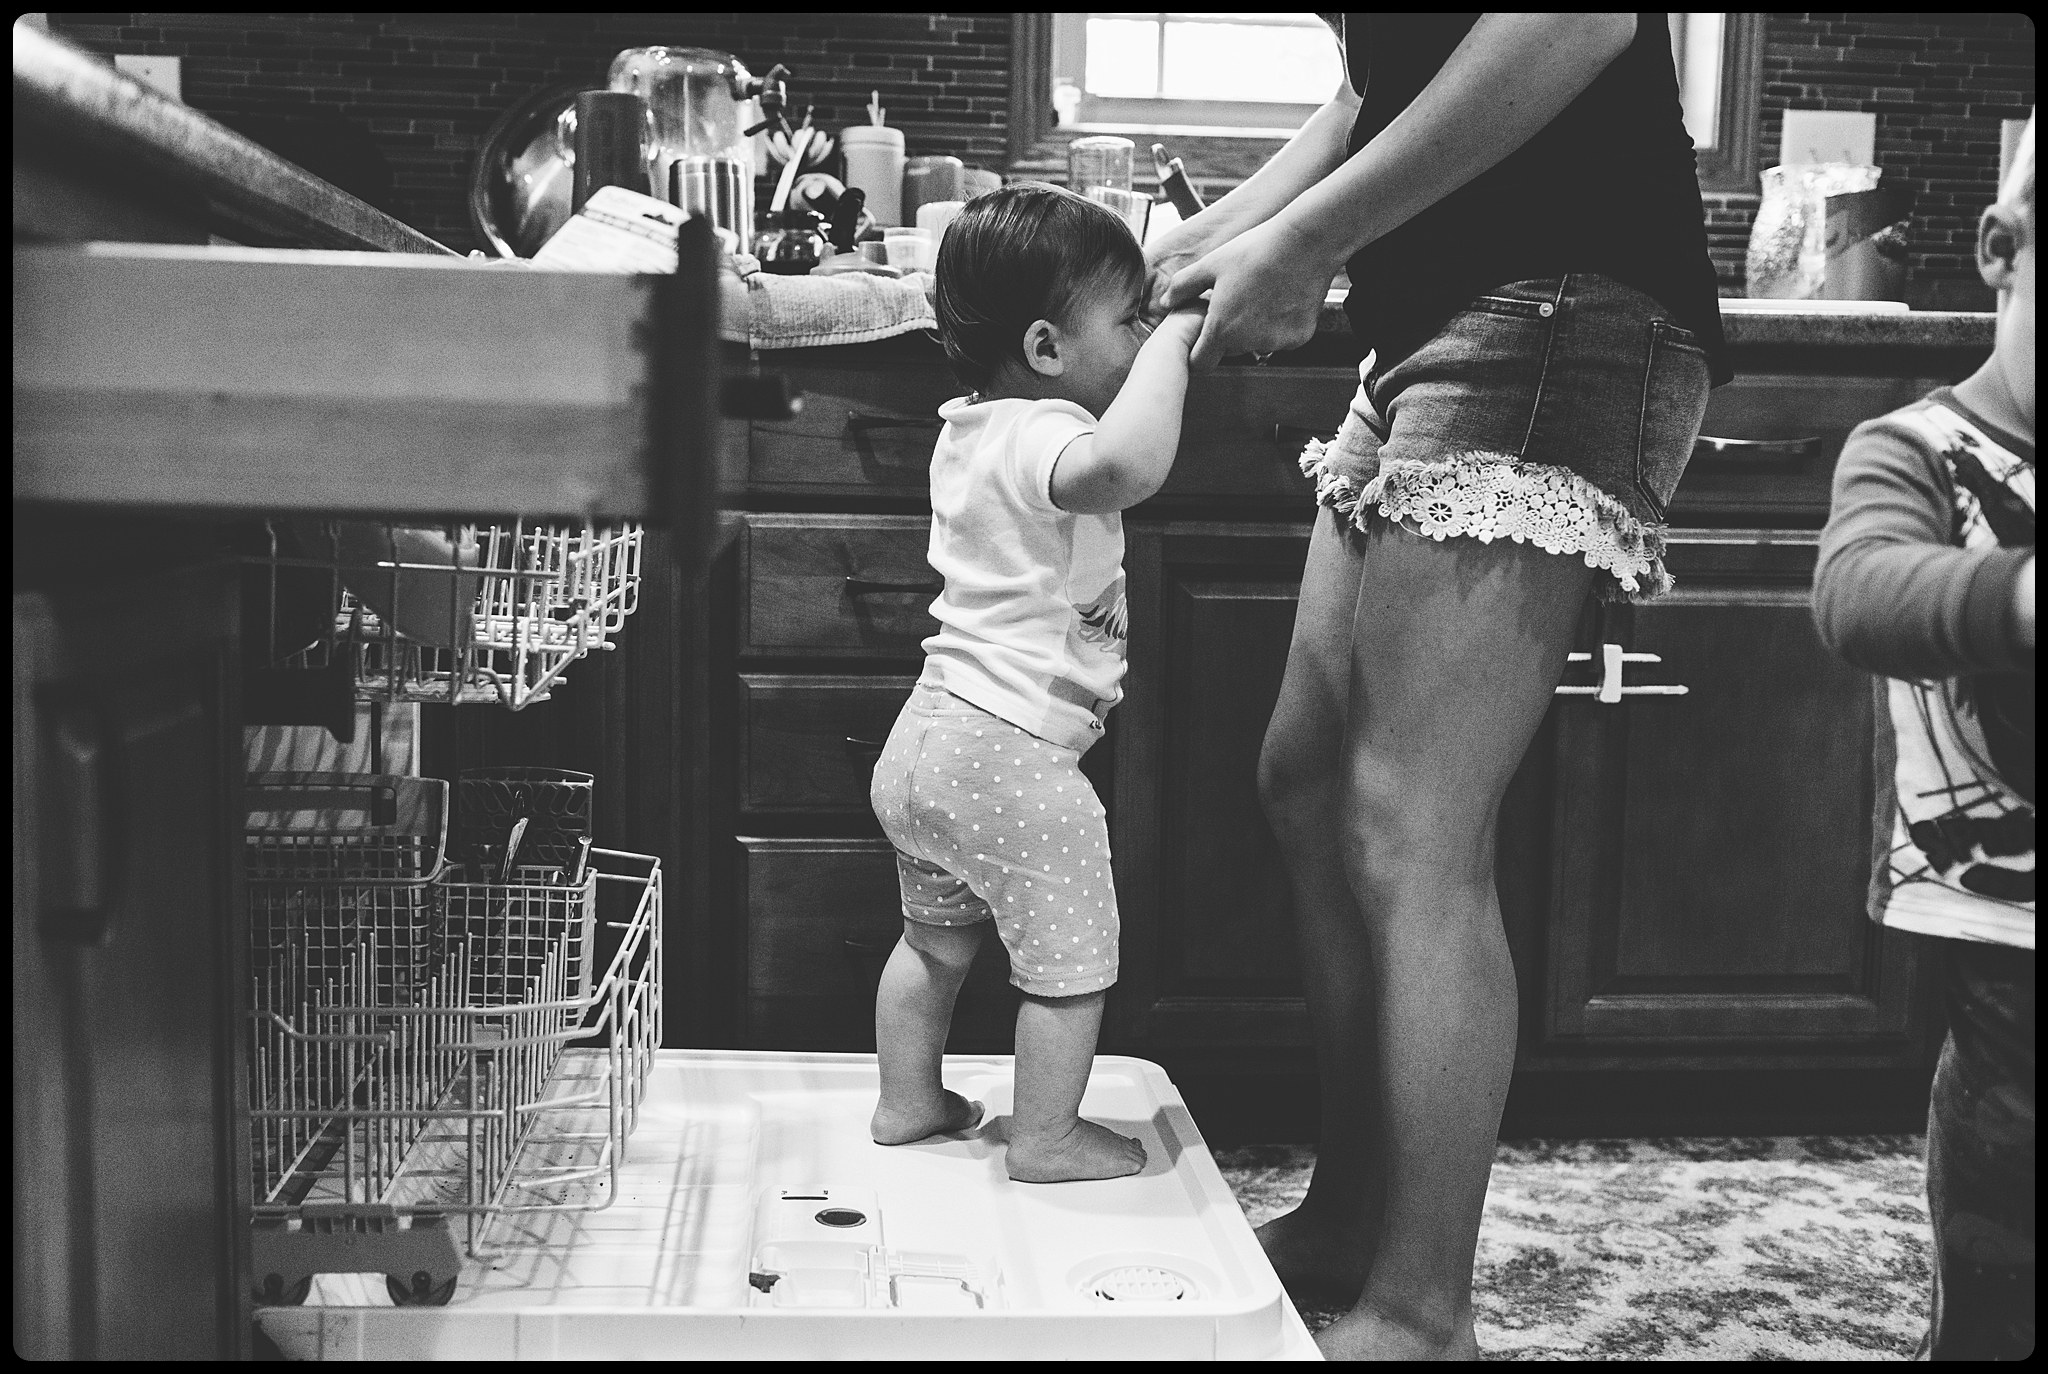 Baby climbs on dishwasher while mom is trying to clean.